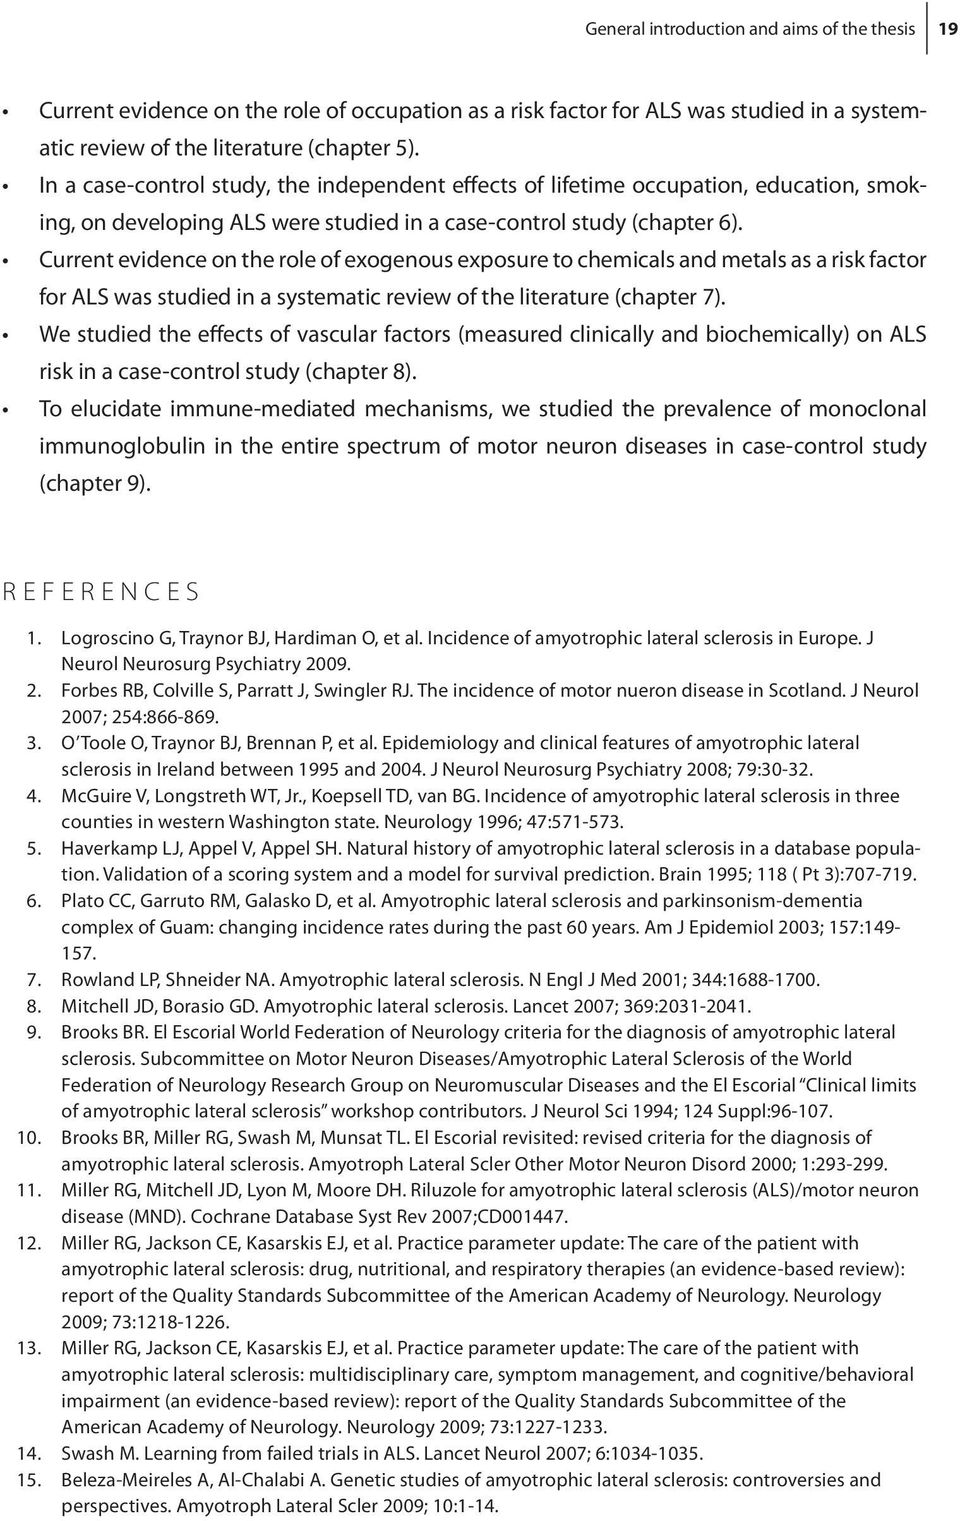 Current evidence on the role of exogenous exposure to chemicals and metals as a risk factor for ALS was studied in a systematic review of the literature (chapter 7).